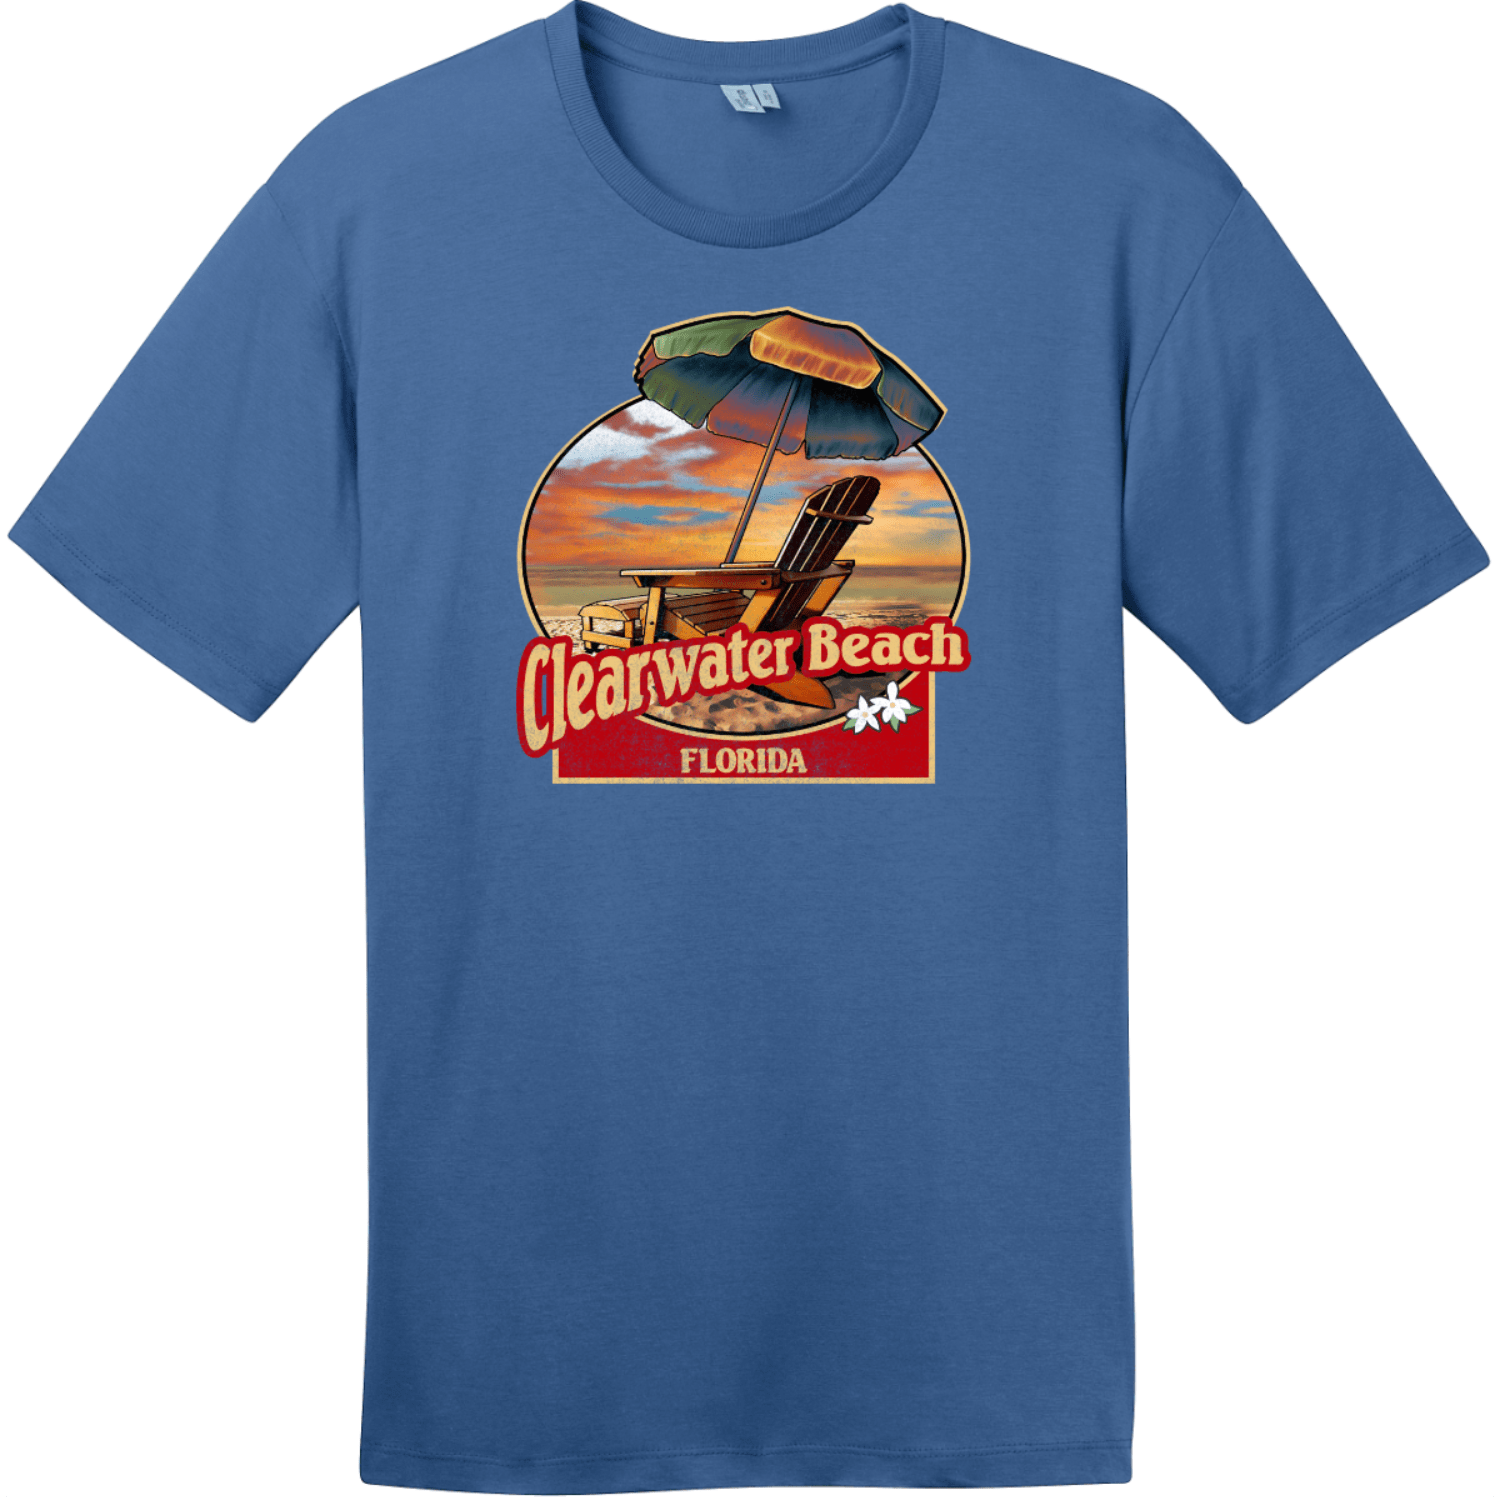 Clearwater Beach Florida Vintage Beach T-Shirt Maritime Blue District Perfect Weight Tee DT104